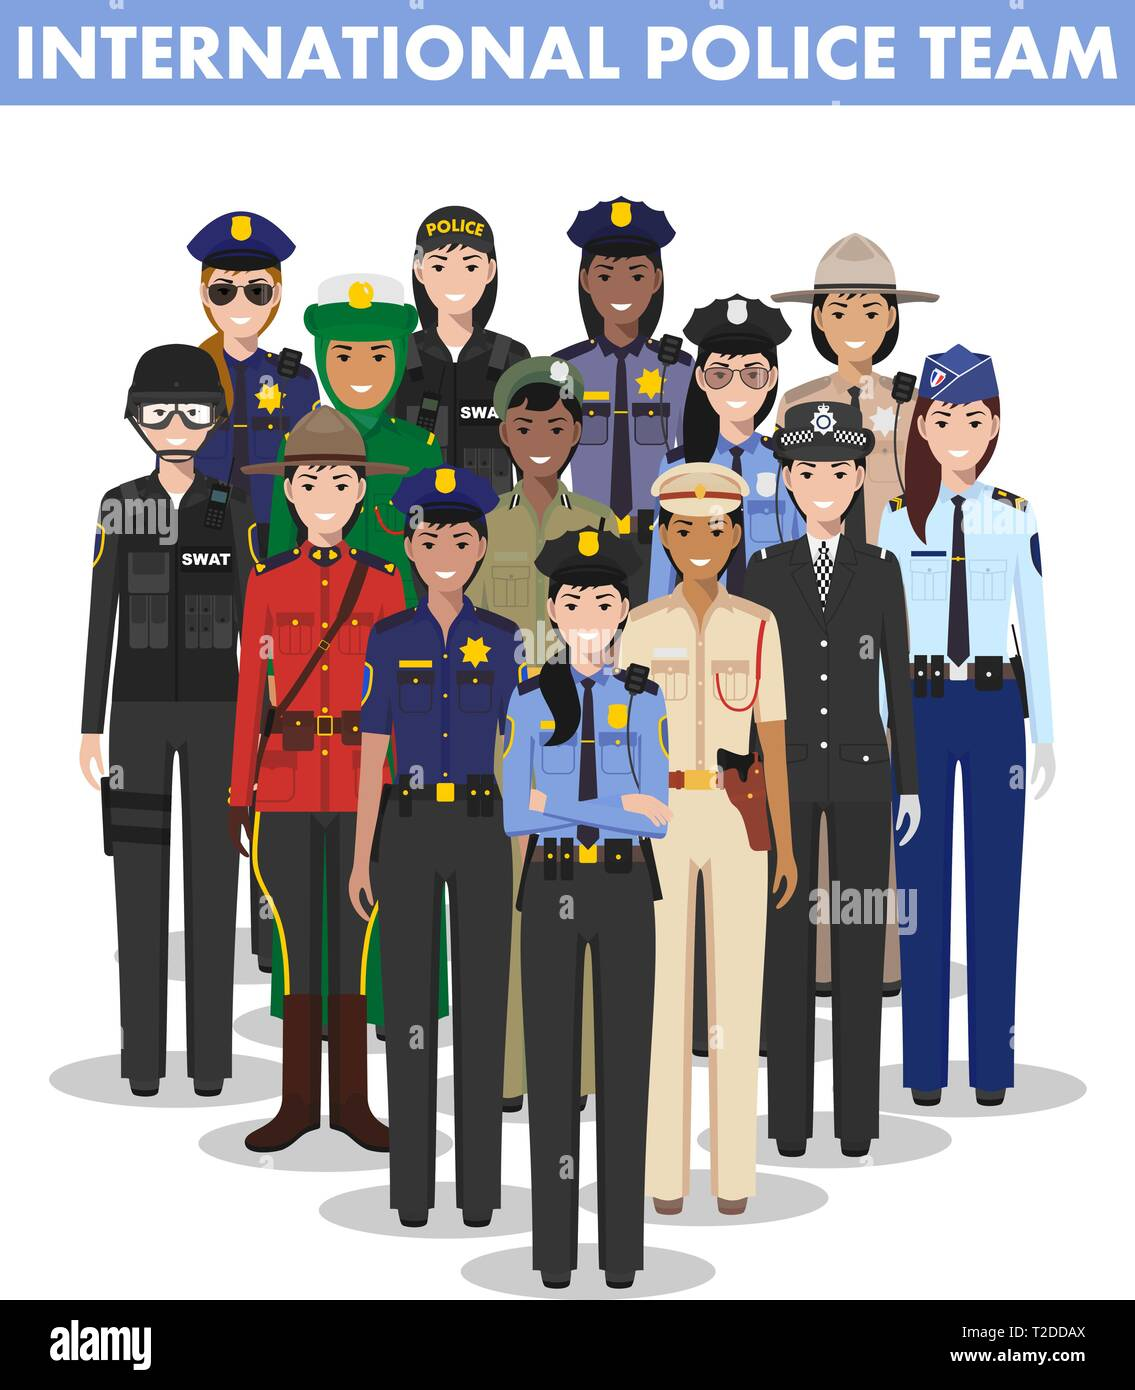 International police people concept. Detailed illustration of SWAT officer, policeman, policewoman and sheriff in flat style on white background - Stock Image